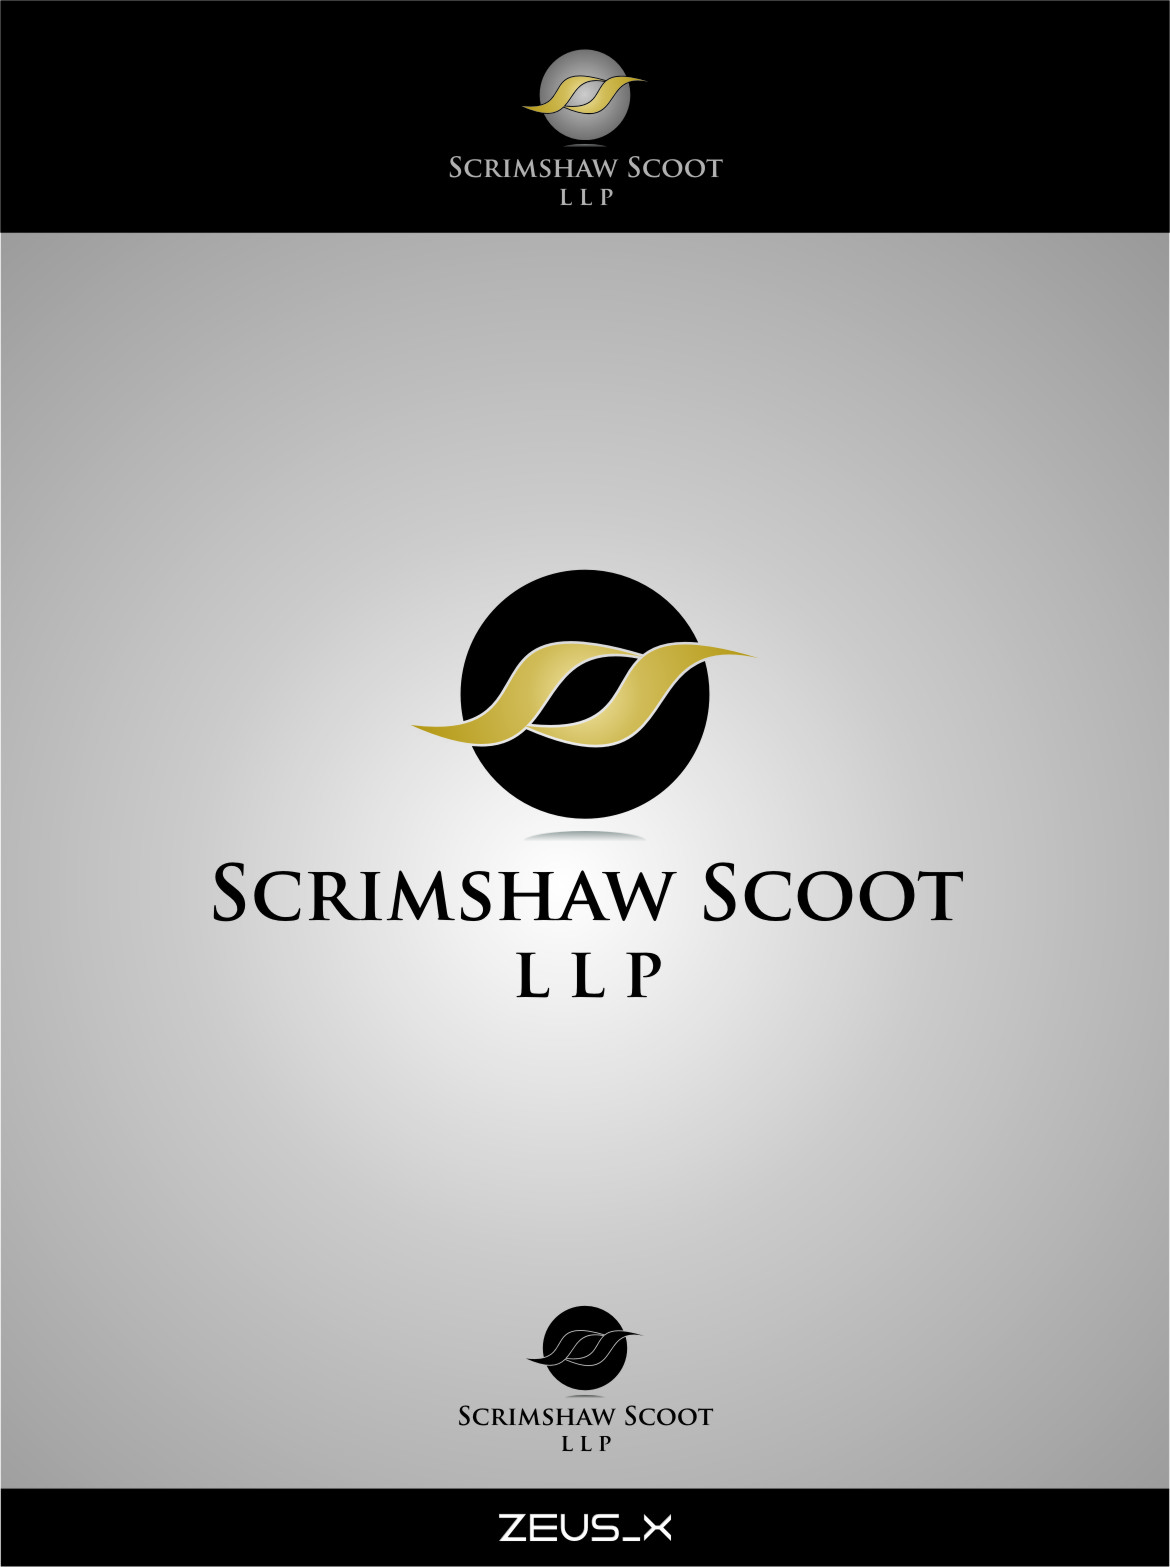 Logo Design by Ngepet_art - Entry No. 86 in the Logo Design Contest Creative Logo Design for Scrimshaw Scott LLP.